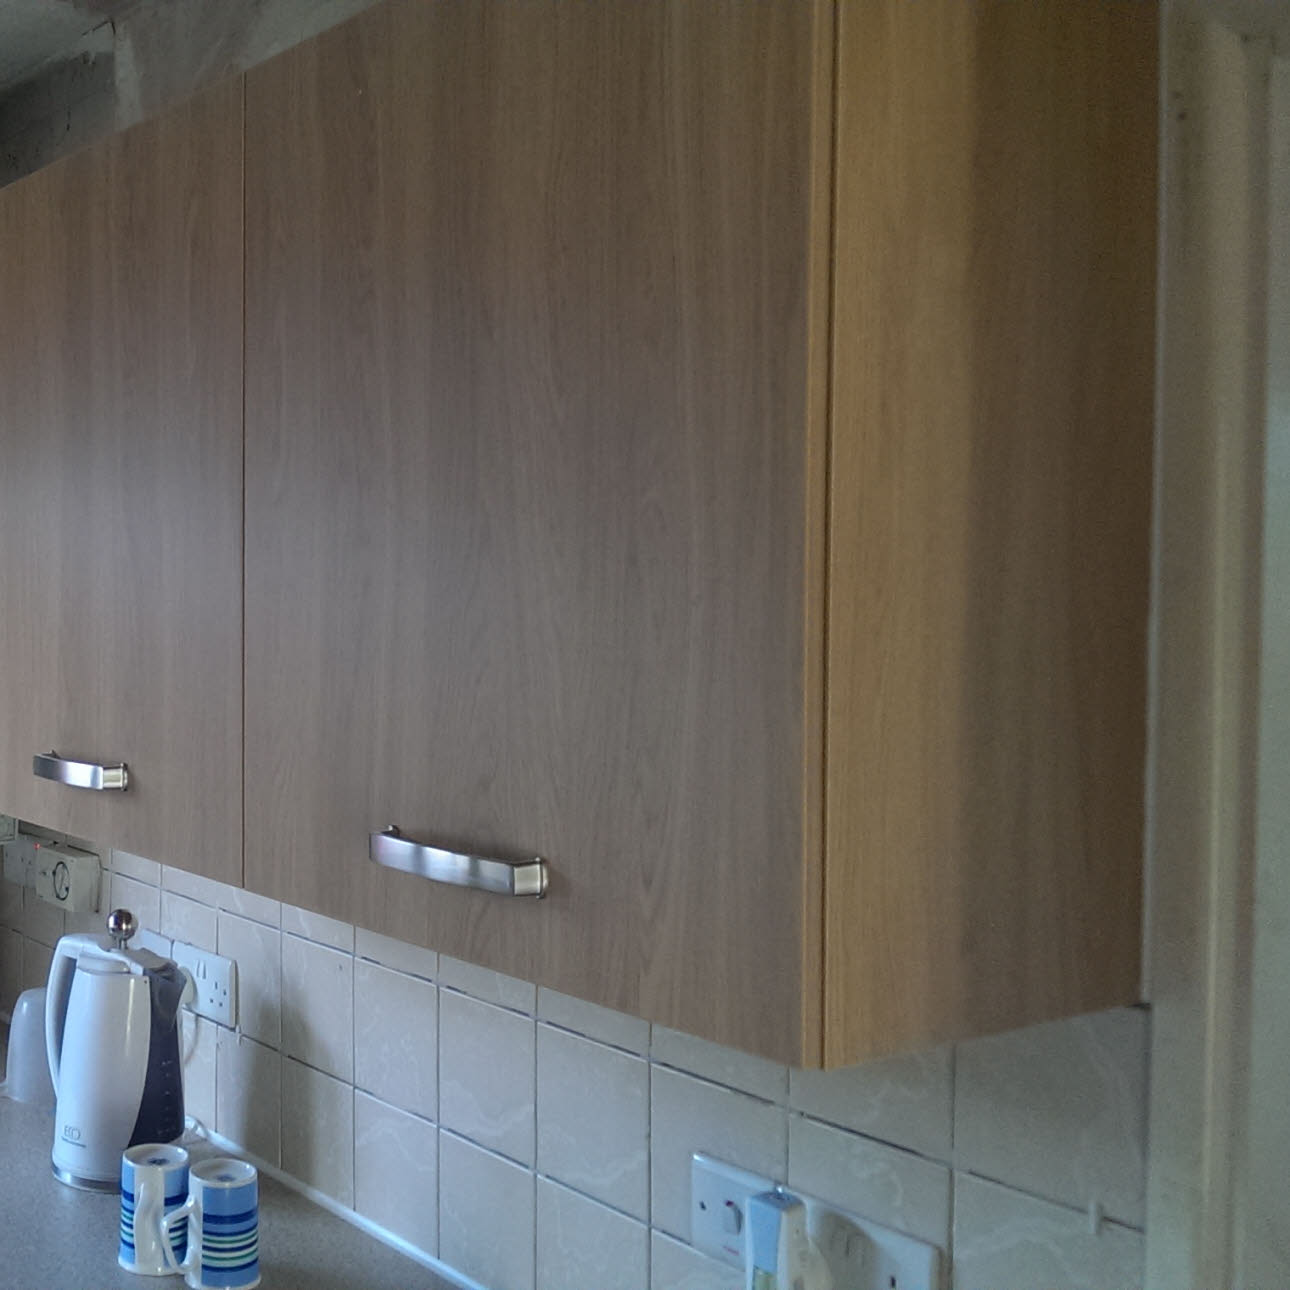 Wooden kitchen wall cupboard fitted on white tiled wall